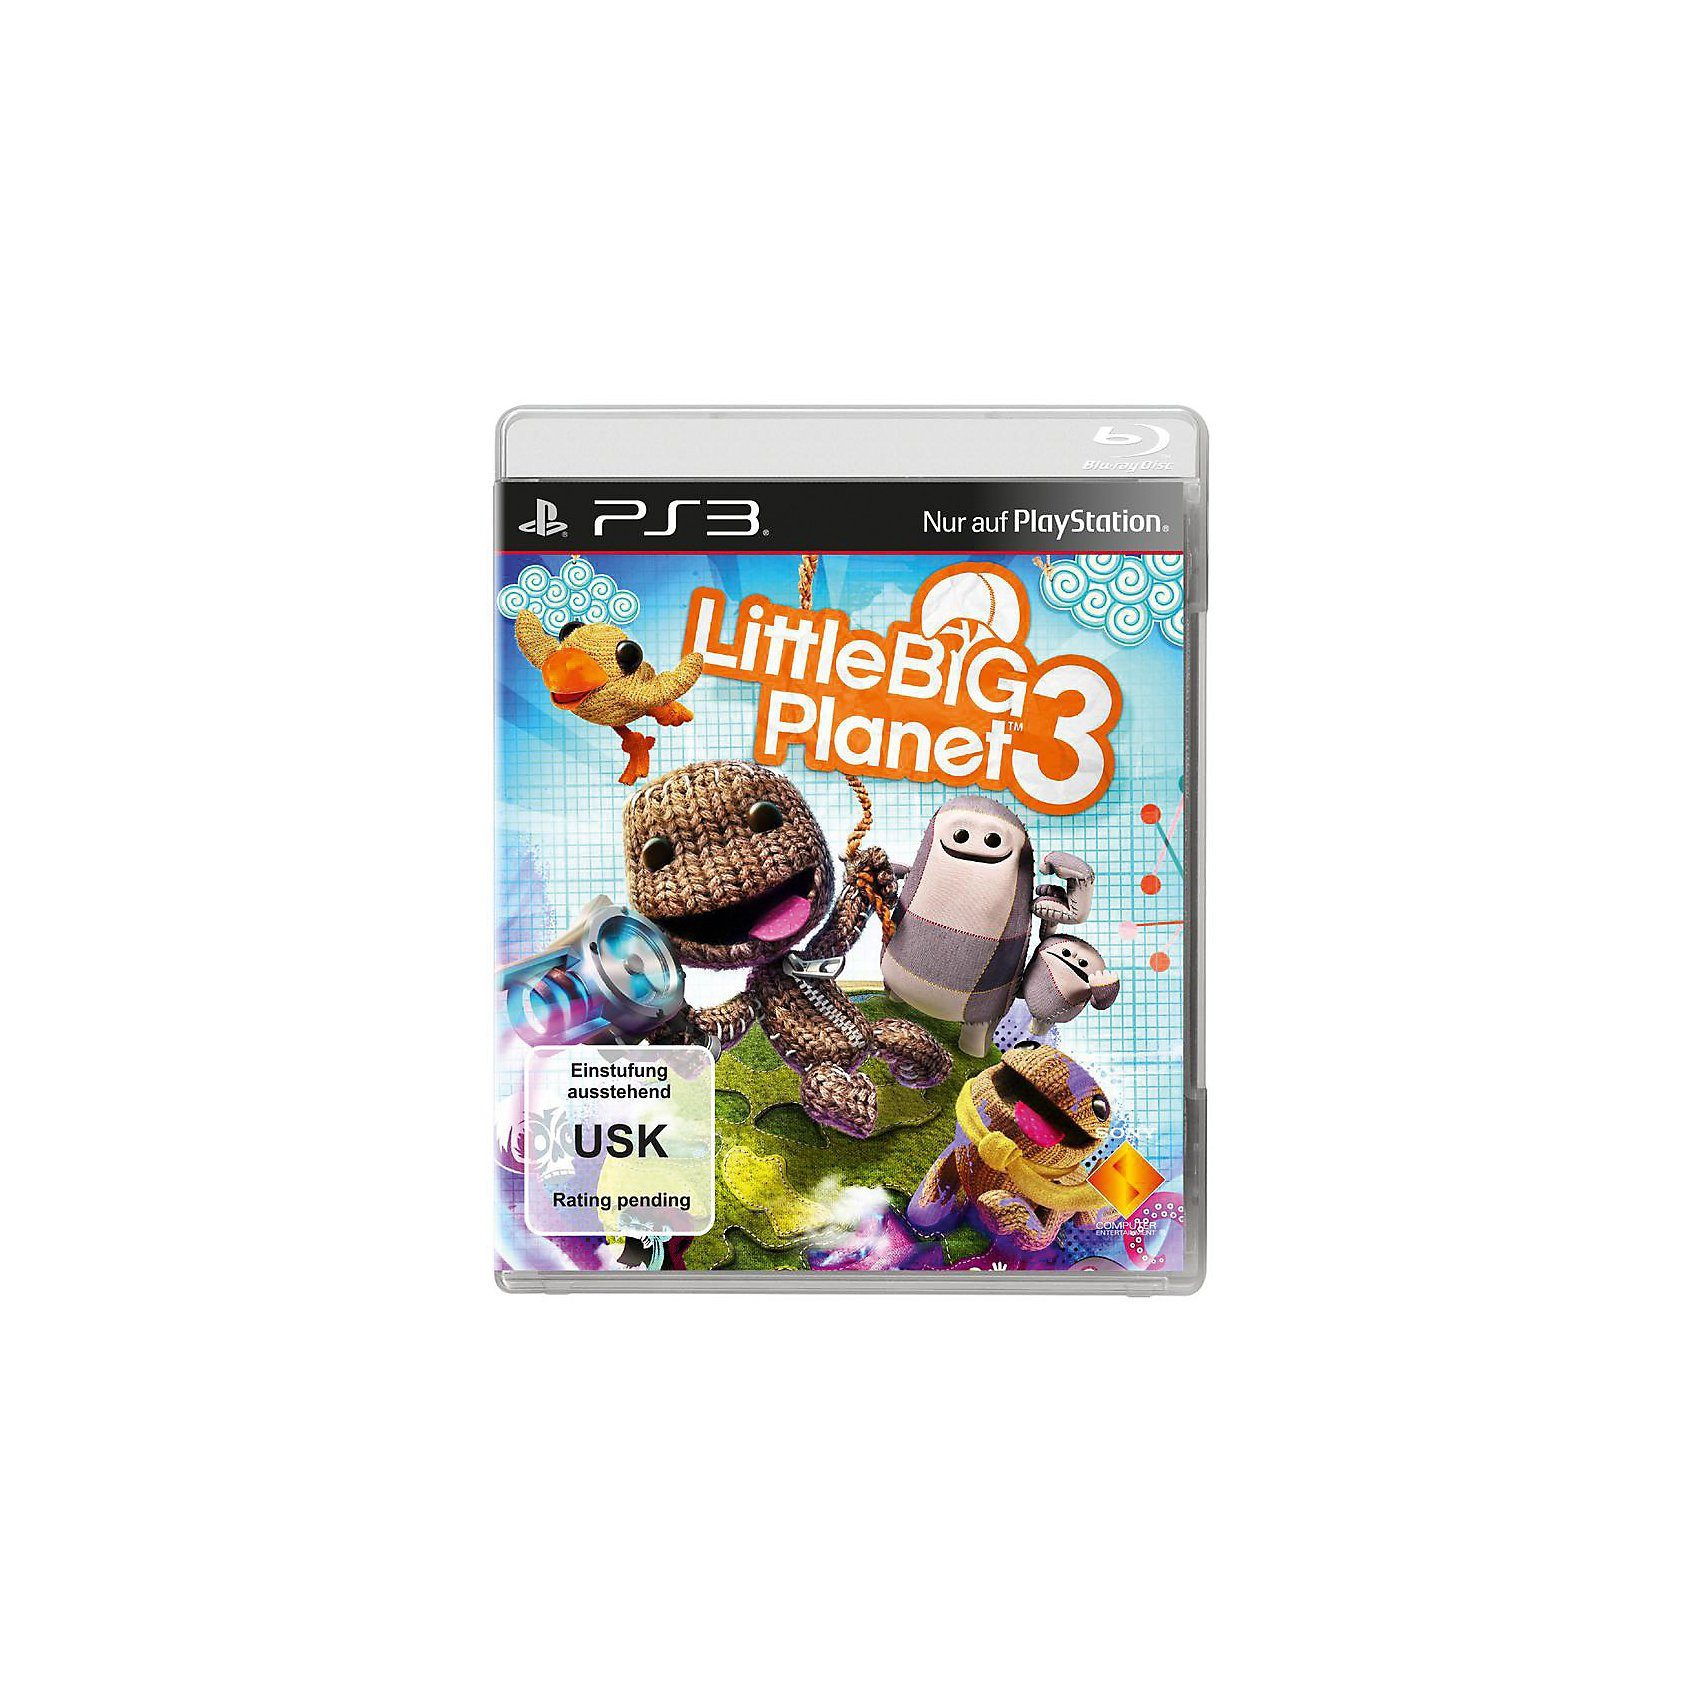 Sony PS3 Little Big Planet 3